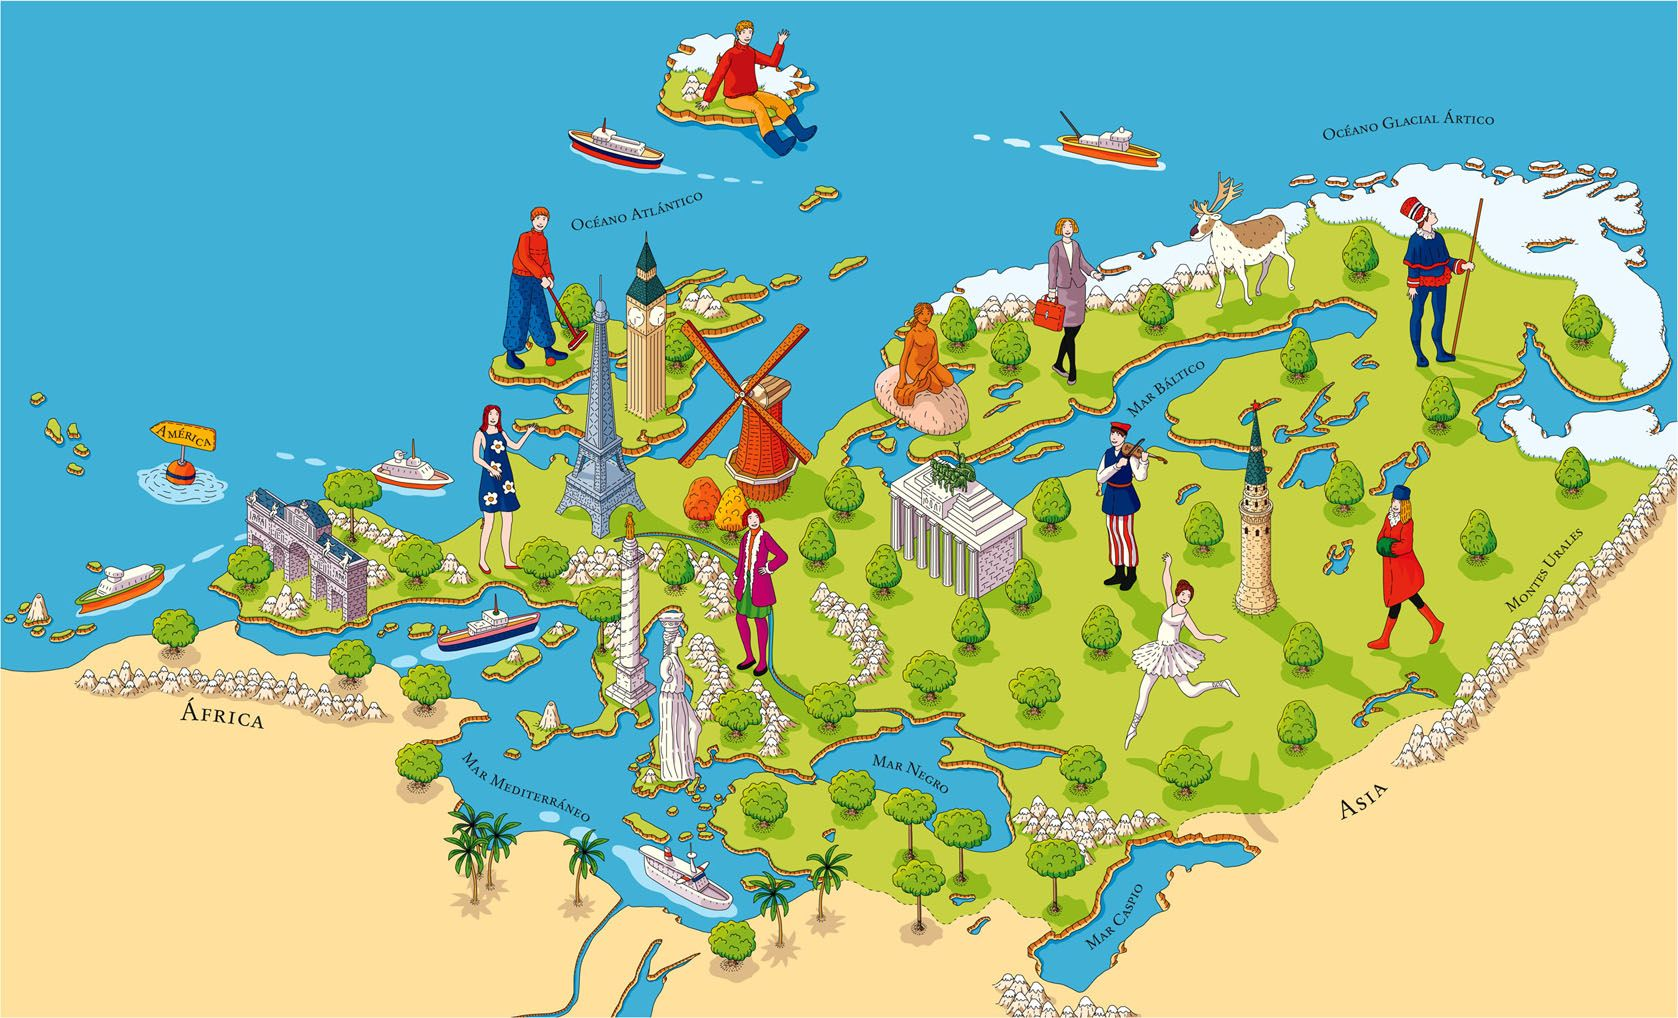 Map of europe quino marin map europe france italy uk germany map of europe quino marin map europe france italy uk gumiabroncs Image collections